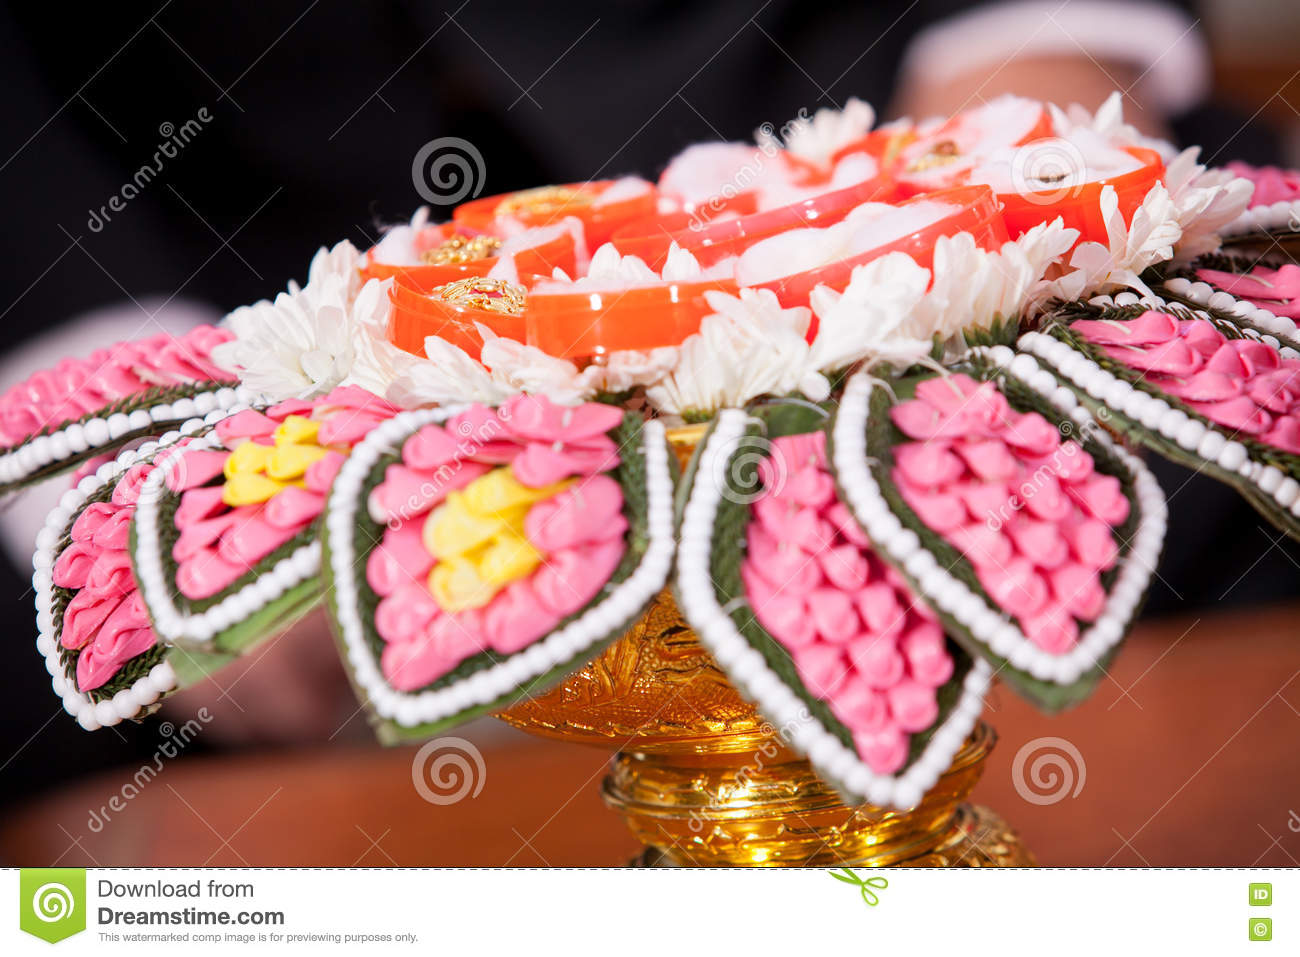 Wedding for thailand stock photo. Image of catering, love - 72021196